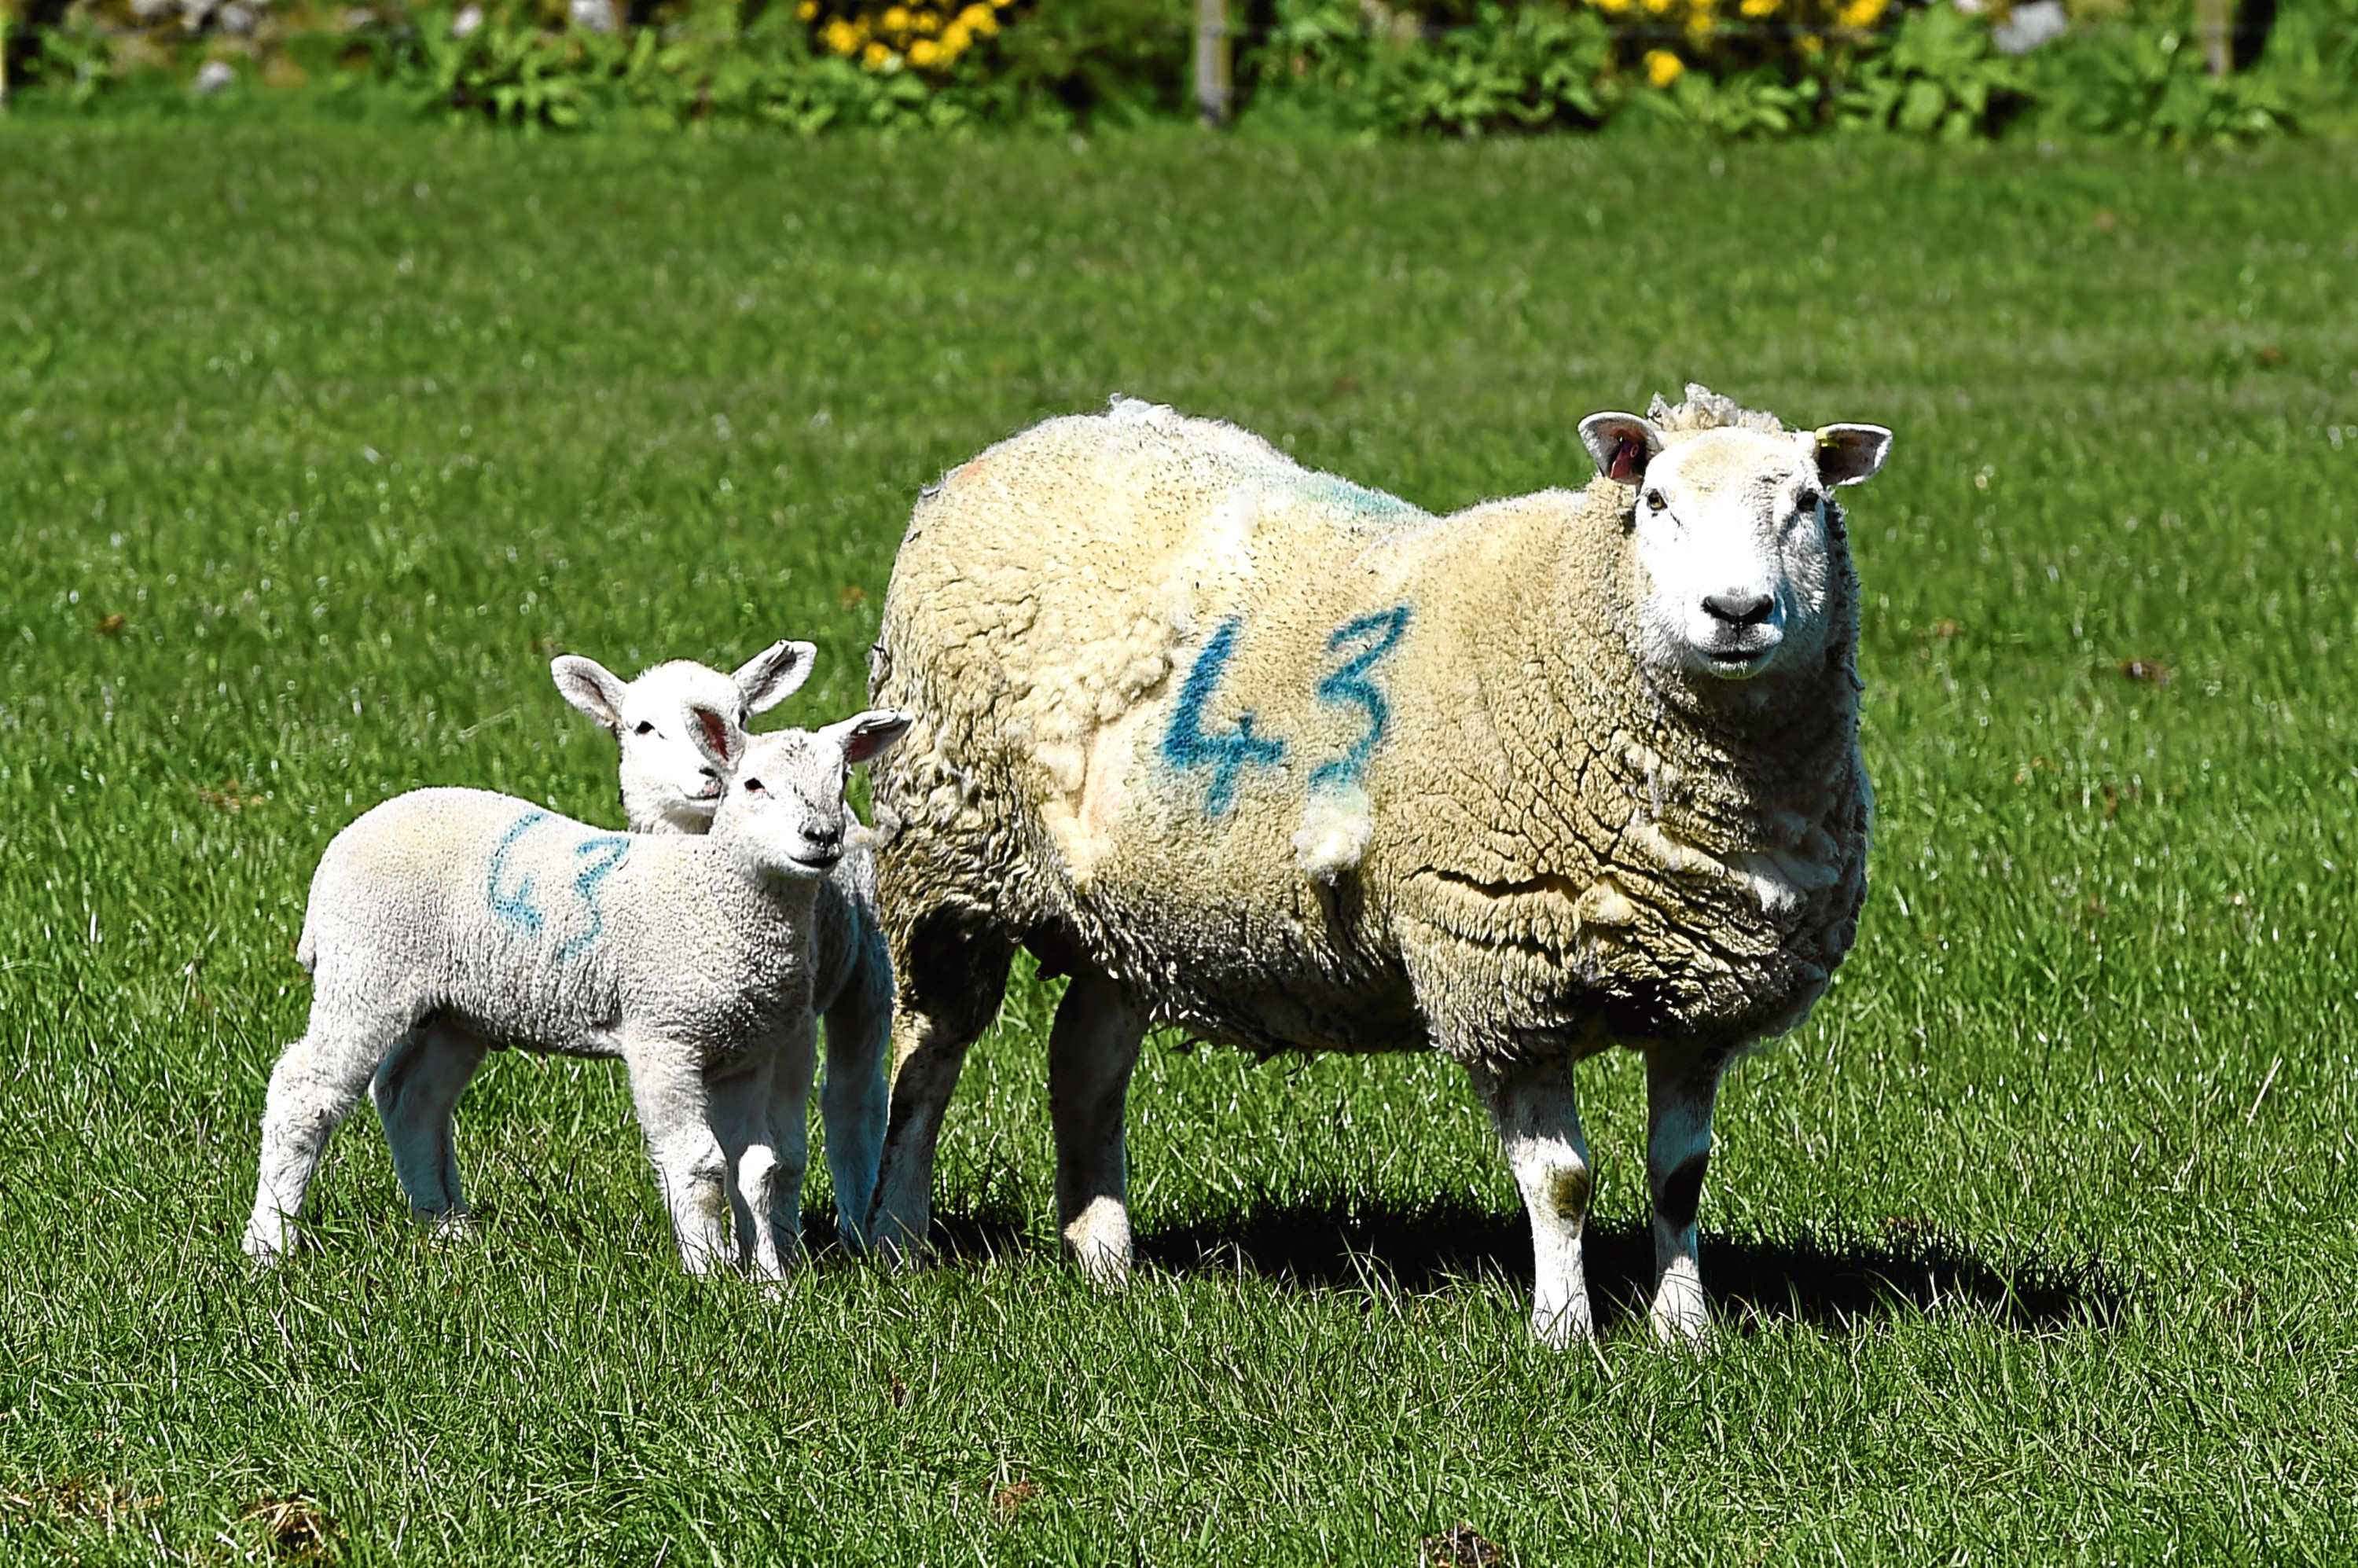 The study looked at the genetics of sheep